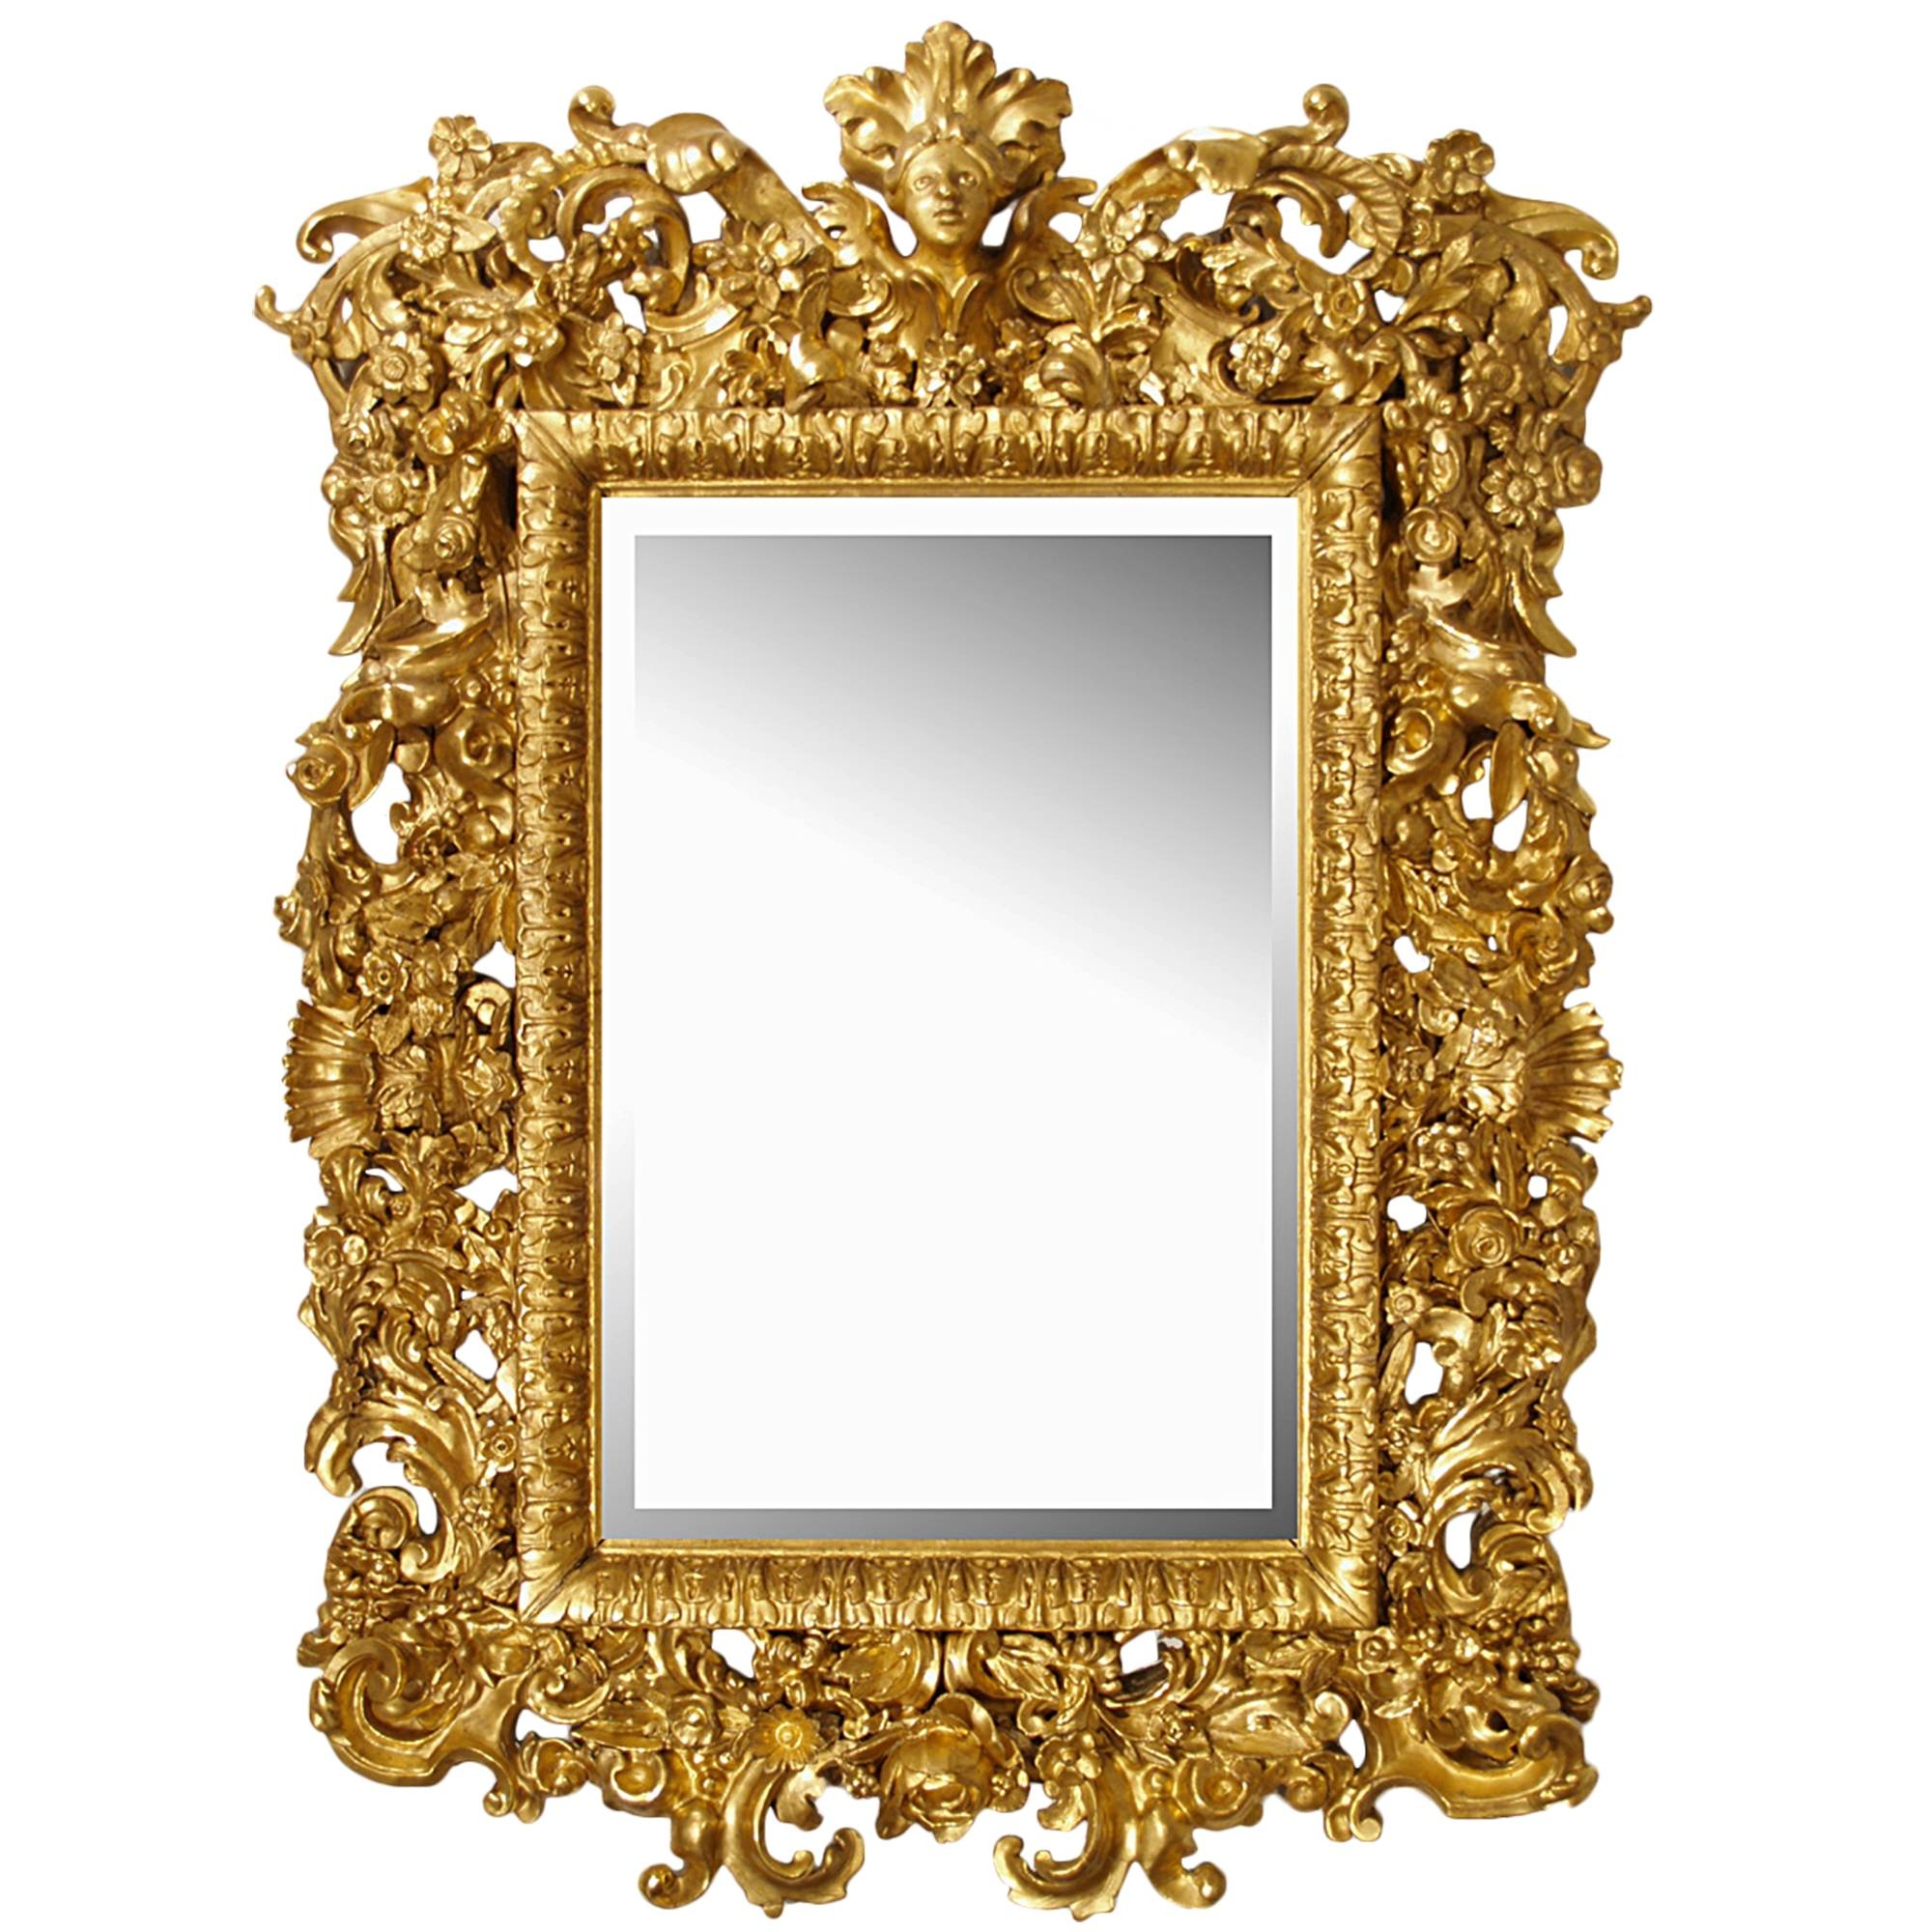 Century Italian Baroque All Giltwood Mirror with Baroque Mirrors (Image 11 of 25)